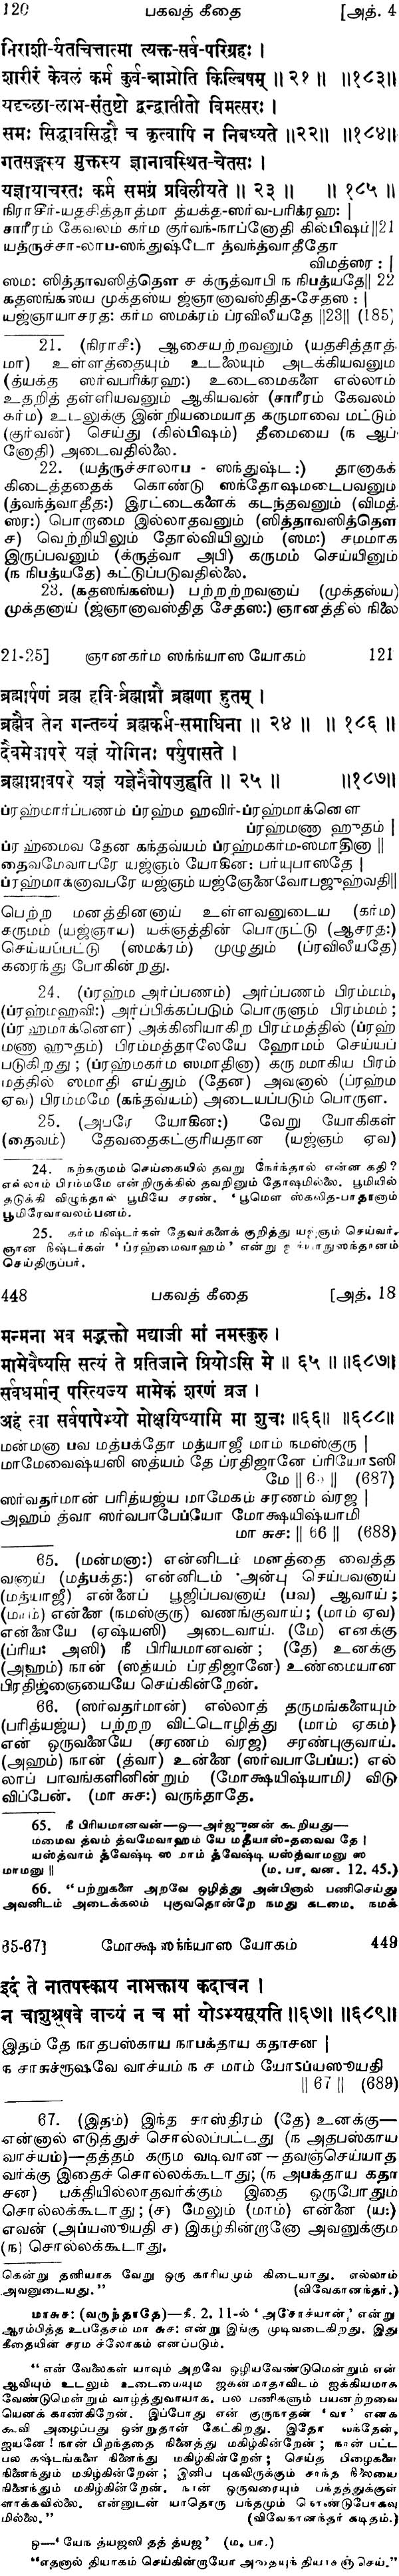 Sanskrit meaning and definitions - Tamil dictionary